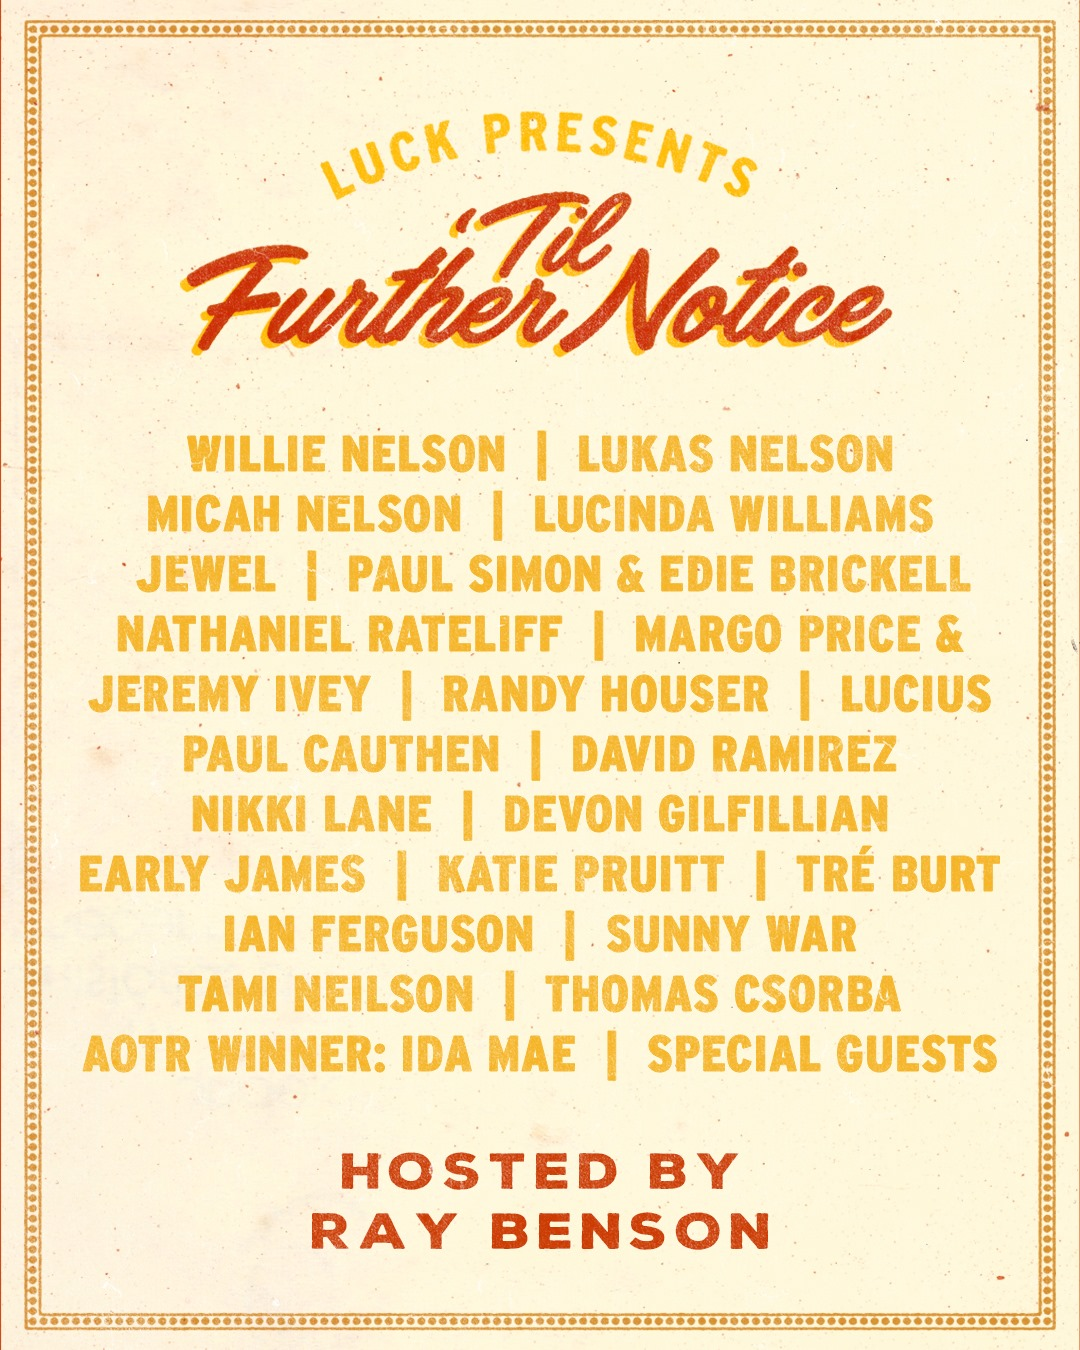 'Til Further Notice streaming concert March 19, 2020